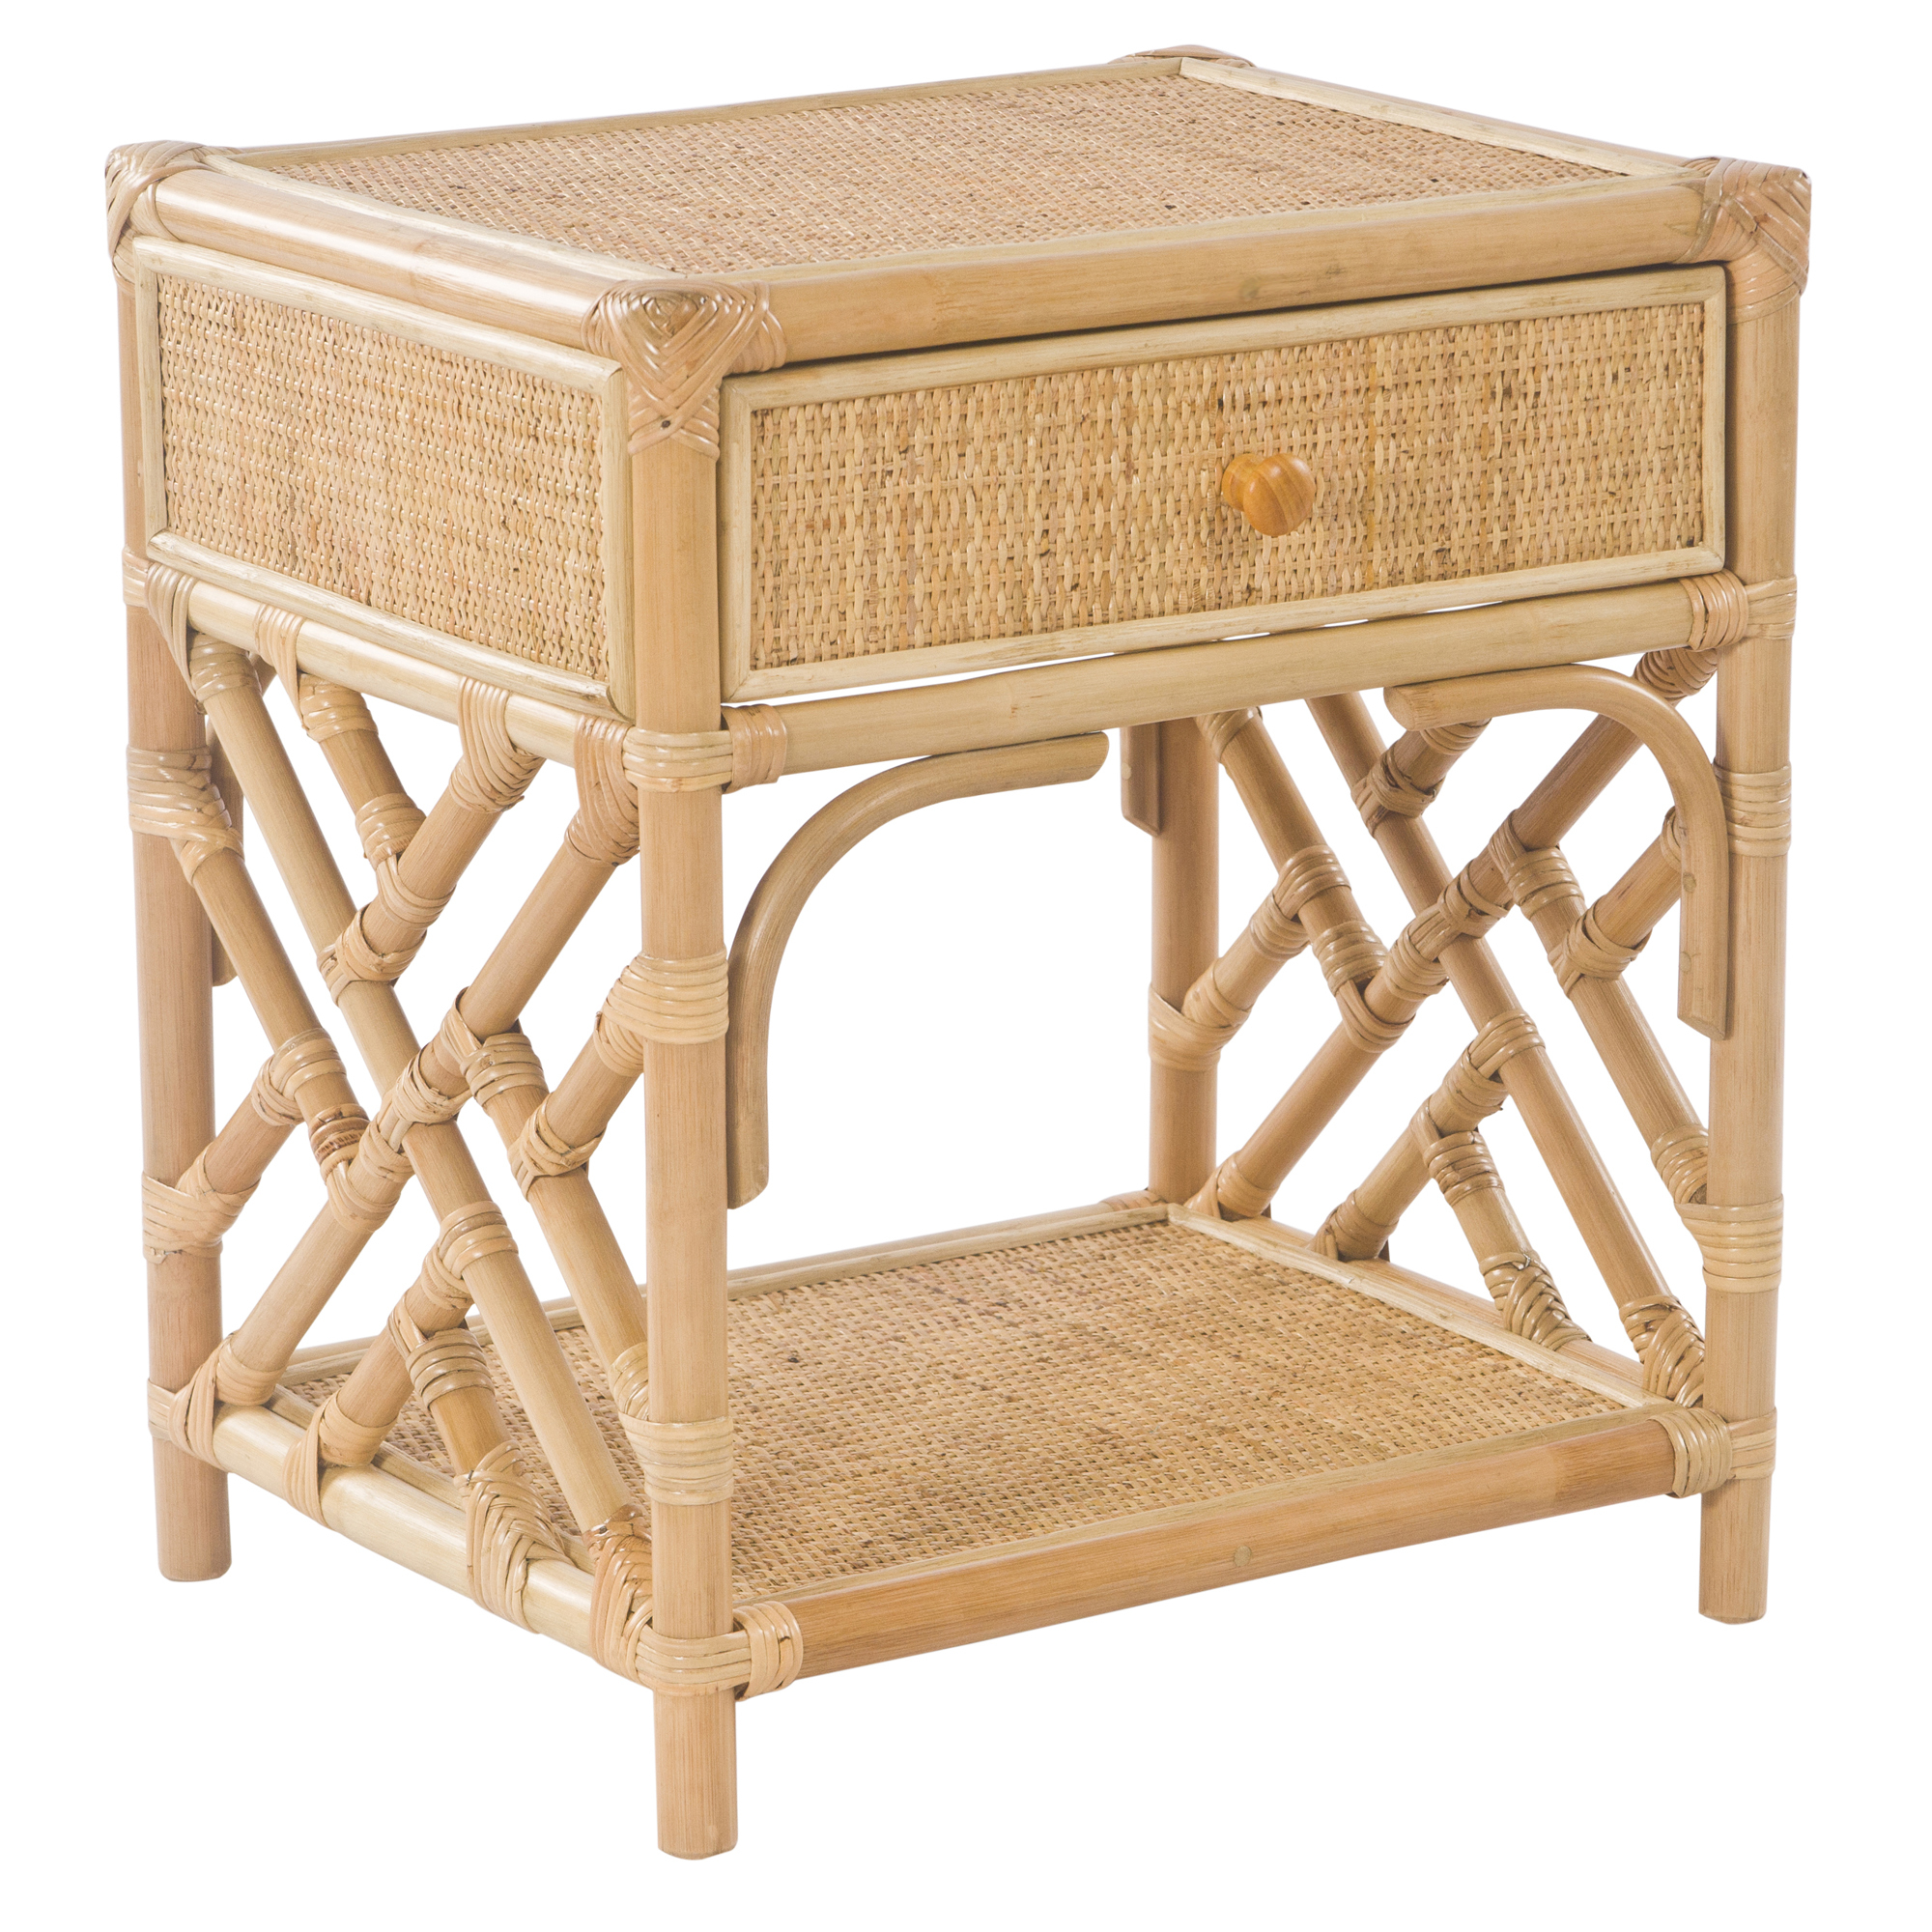 Temple Webster Masika Rattan Bedside Table Reviews